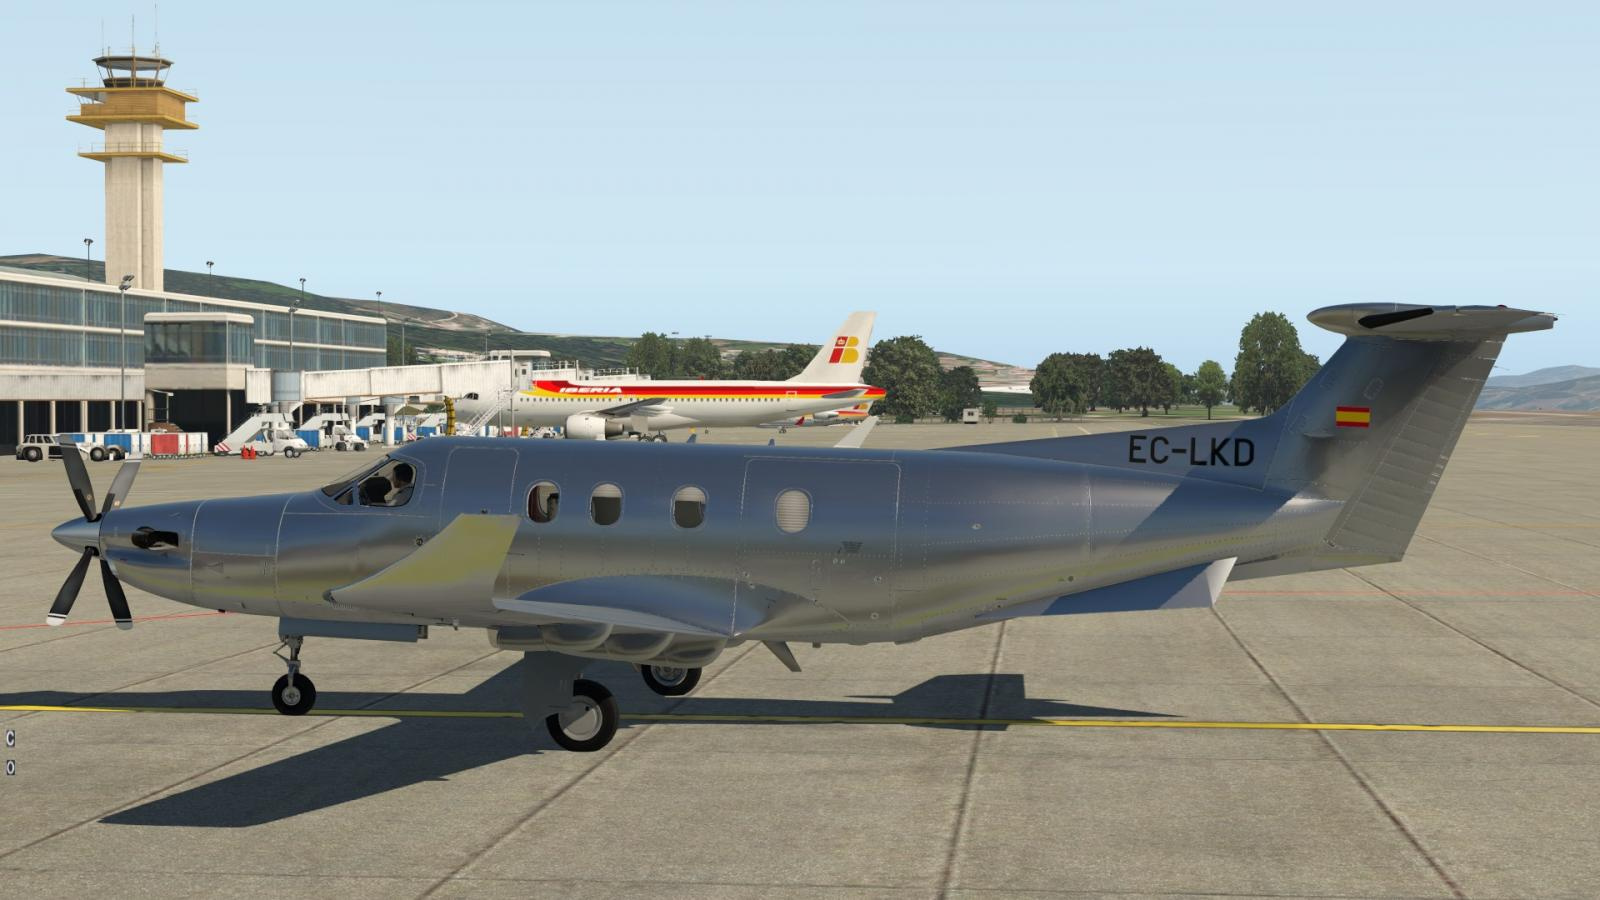 Lkd Kiel what plane did you fly today max 2 pictures per post one post